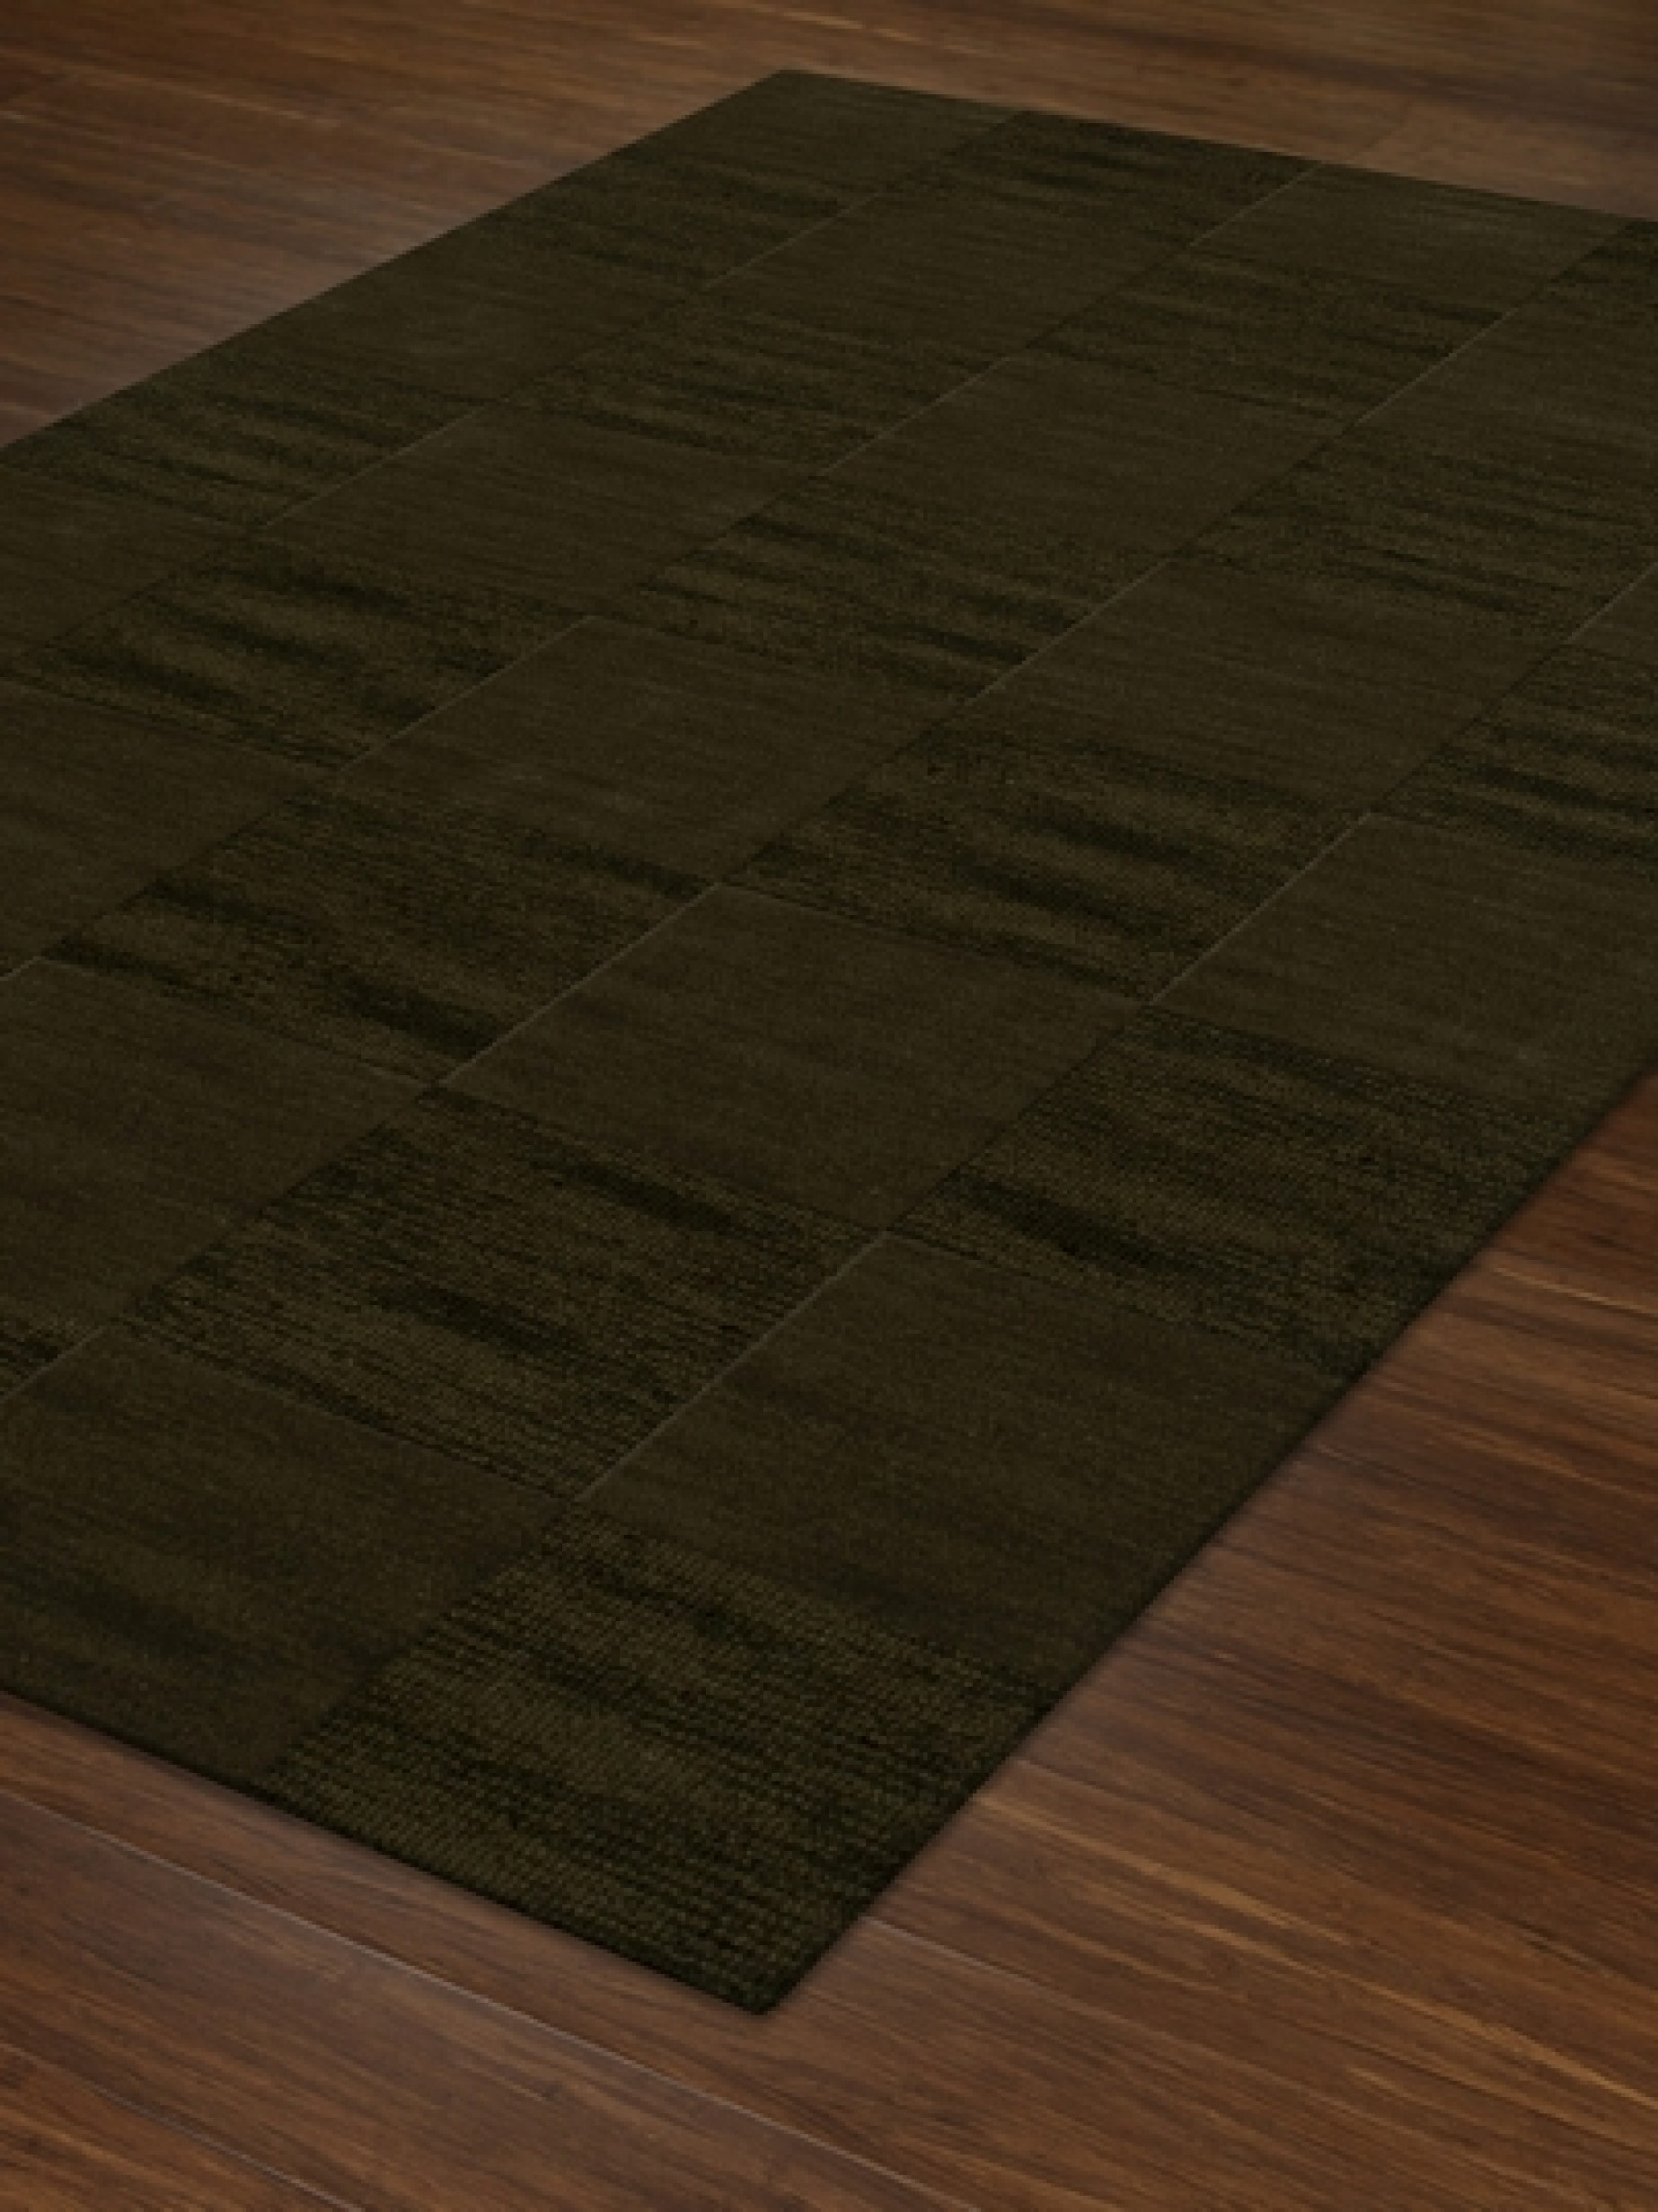 Beautiful Rectangle Dalyn Rugs In Green With Checked Motif For Floor Decor Ideas